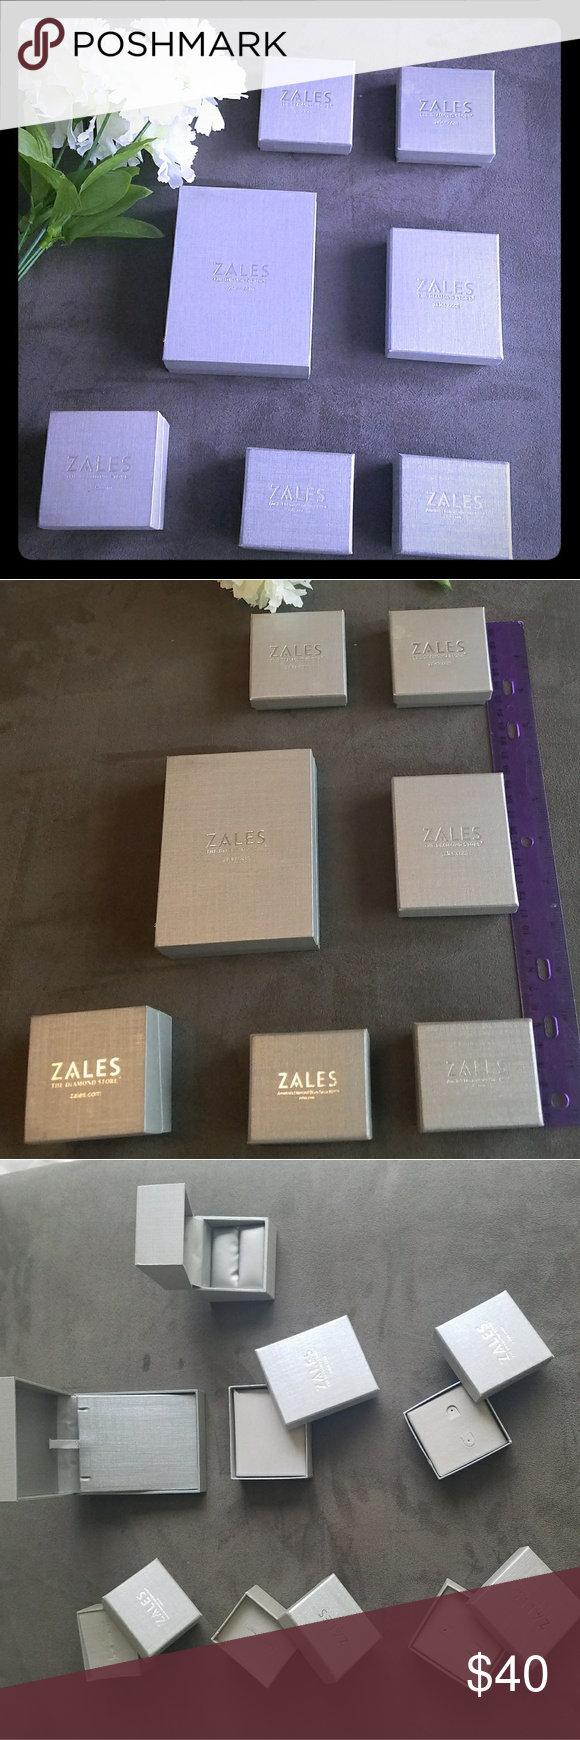 Zales Boxes : zales, boxes, Zales, Jewelry, Empty, Cases, Jewelry,, Earring